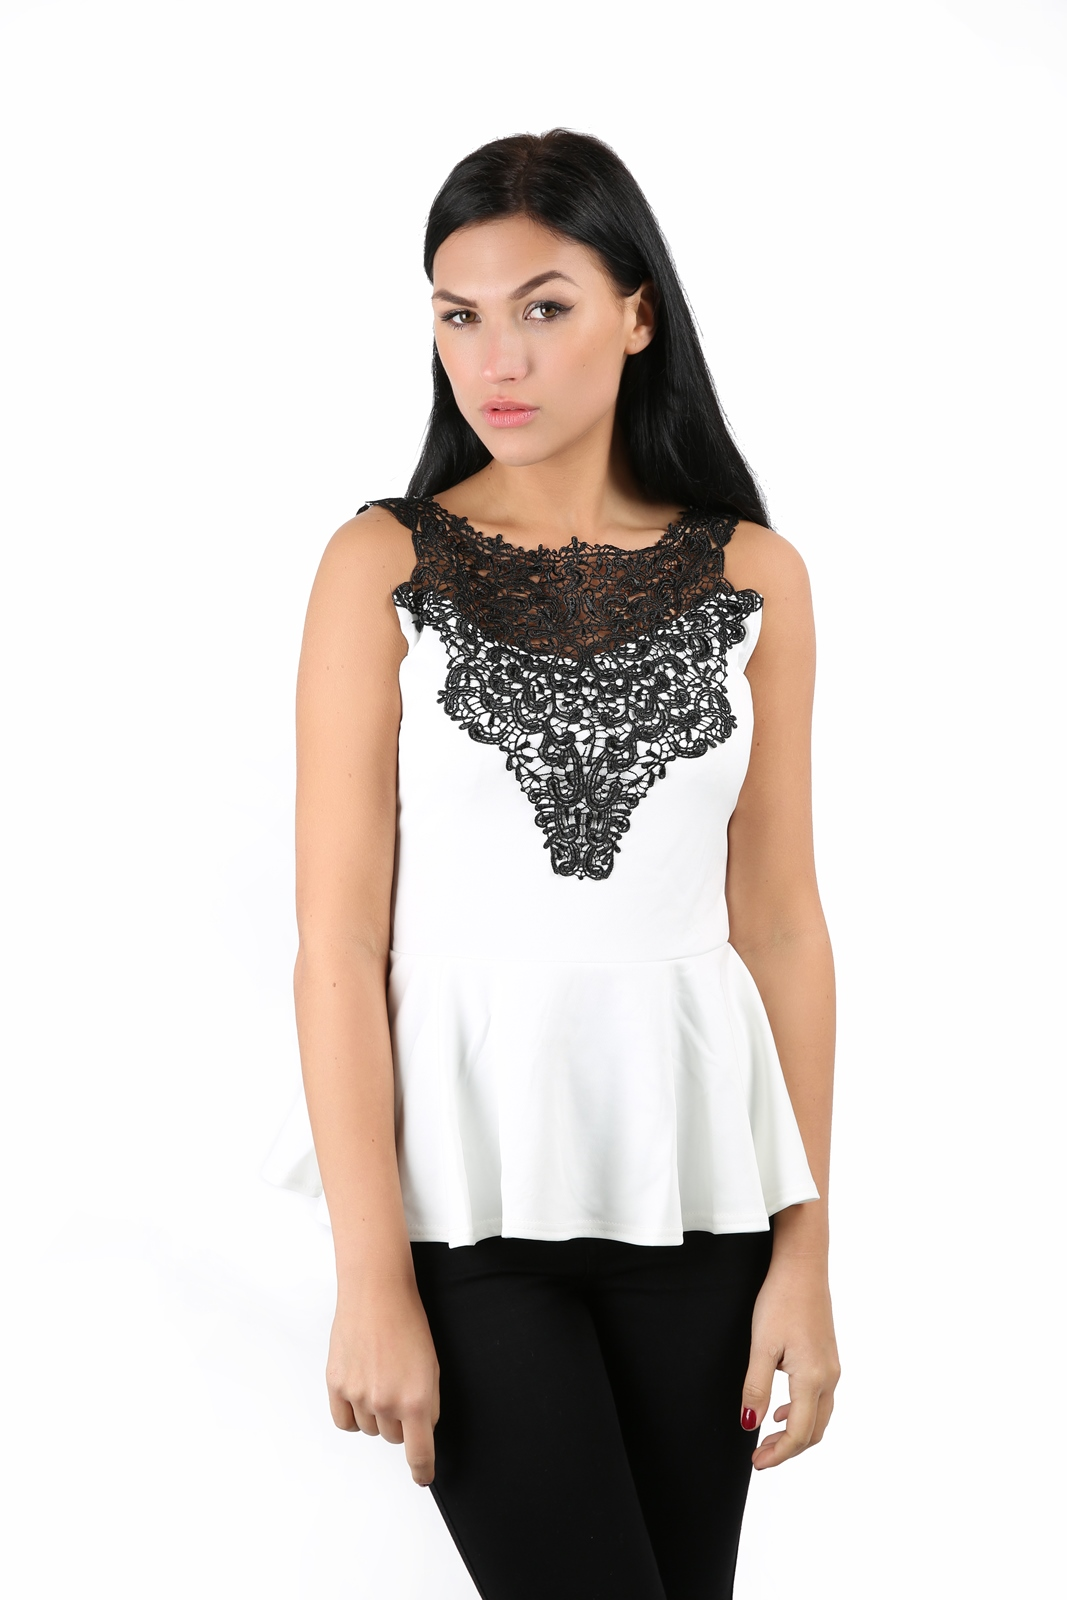 Shop cute tops and stylish blouses at Krisp! Find short sleeve and long sleeve tops in trendy styles for women. Krisp Clothing.